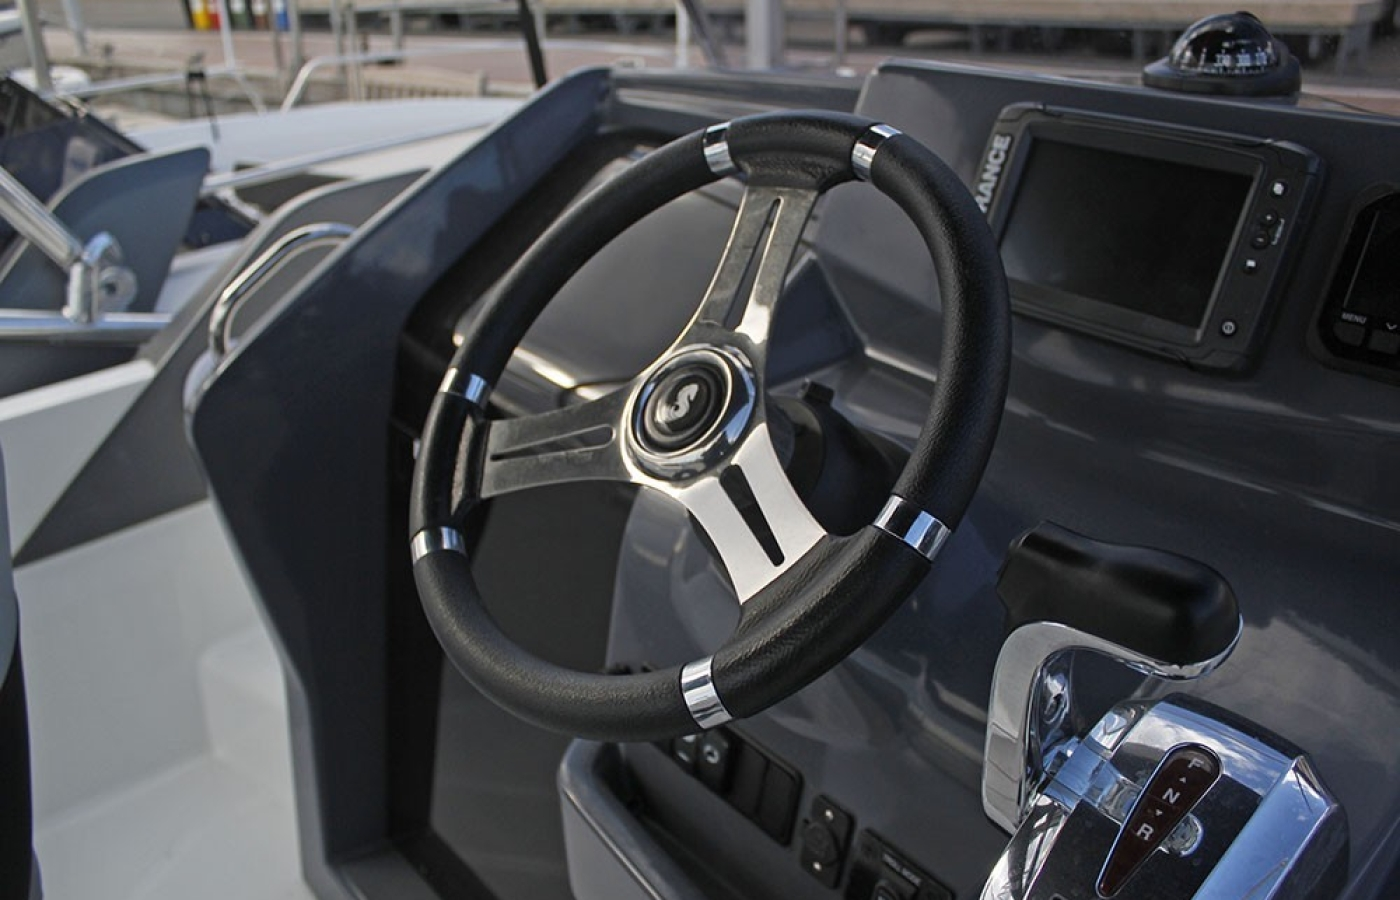 Close up view of the cockpit